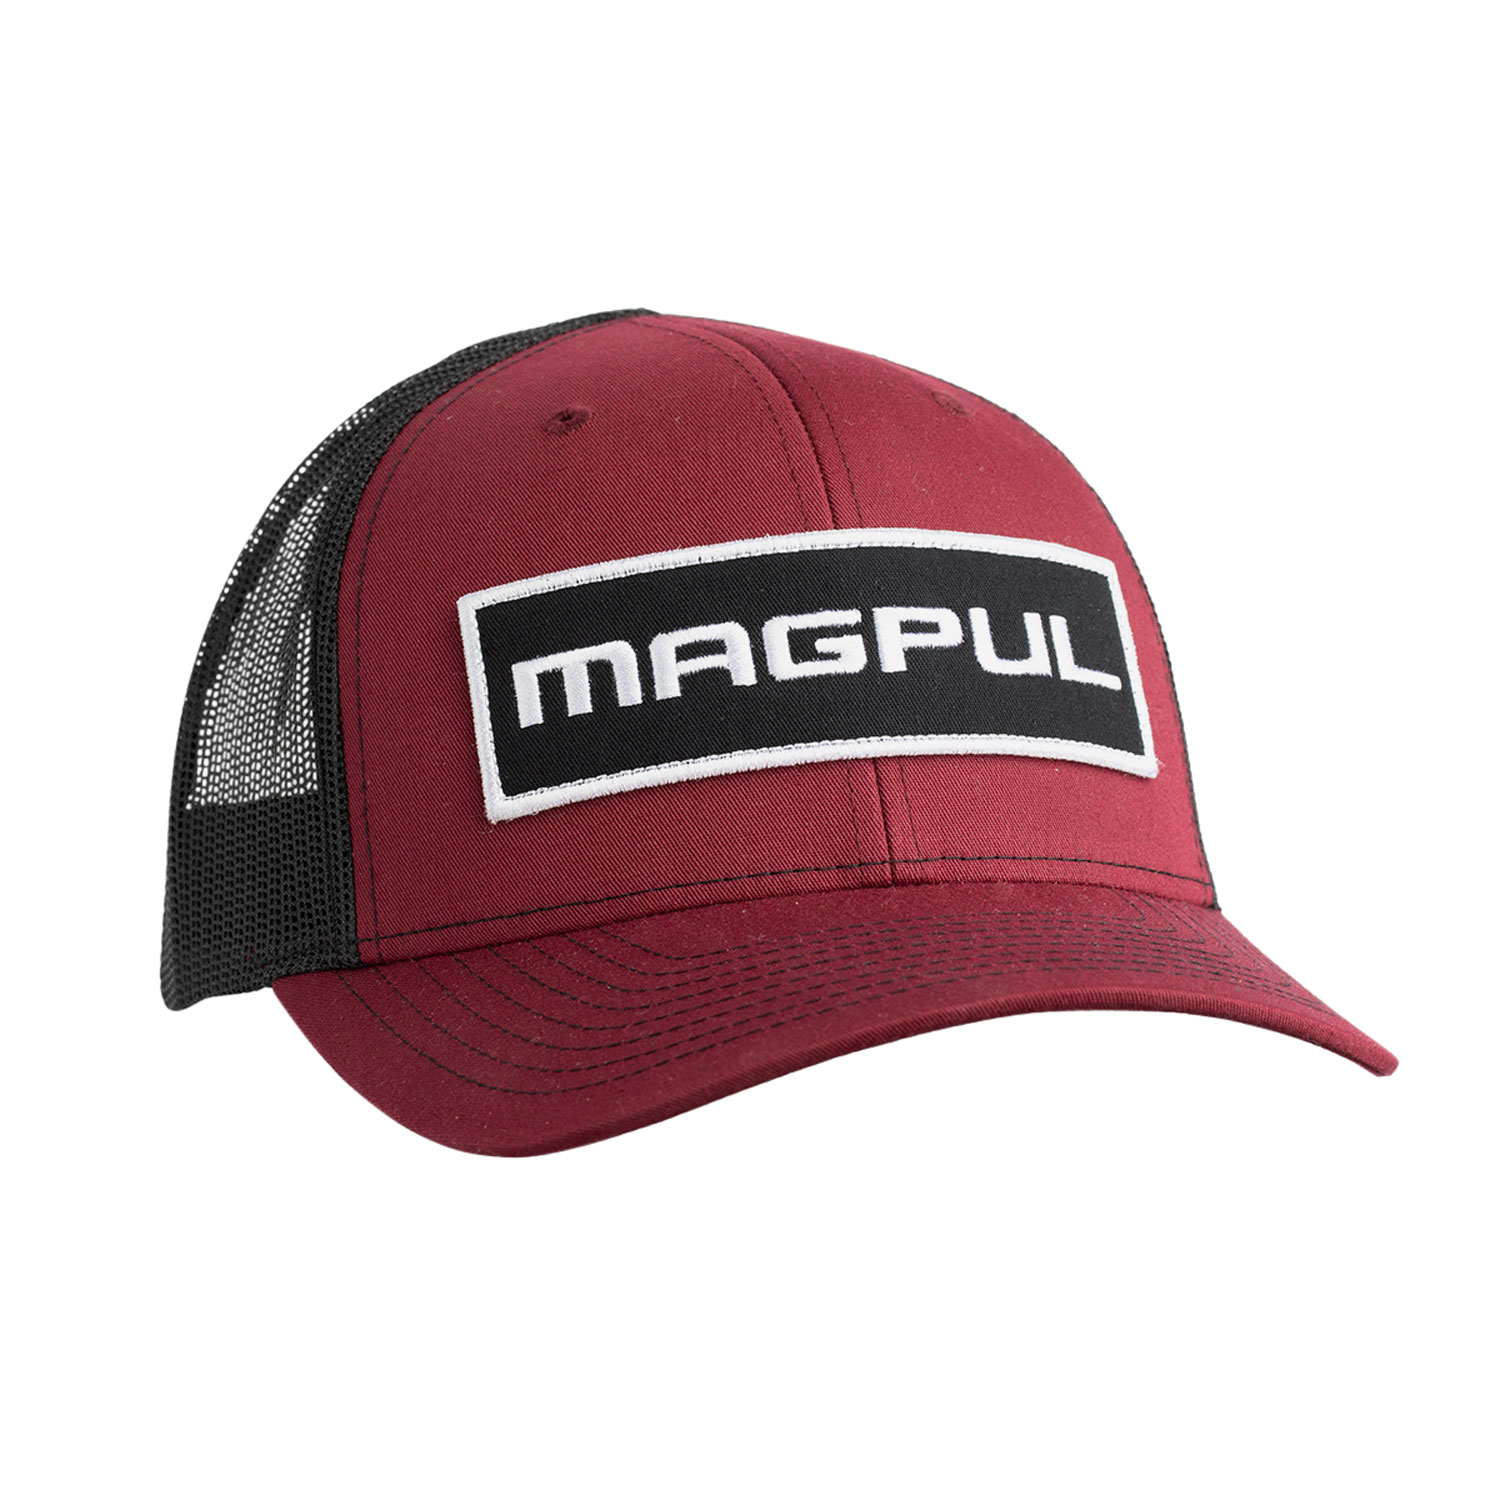 Magpul MAG1104-604 Wordmark Patch Trucker Hat Charcoal Gray/Black